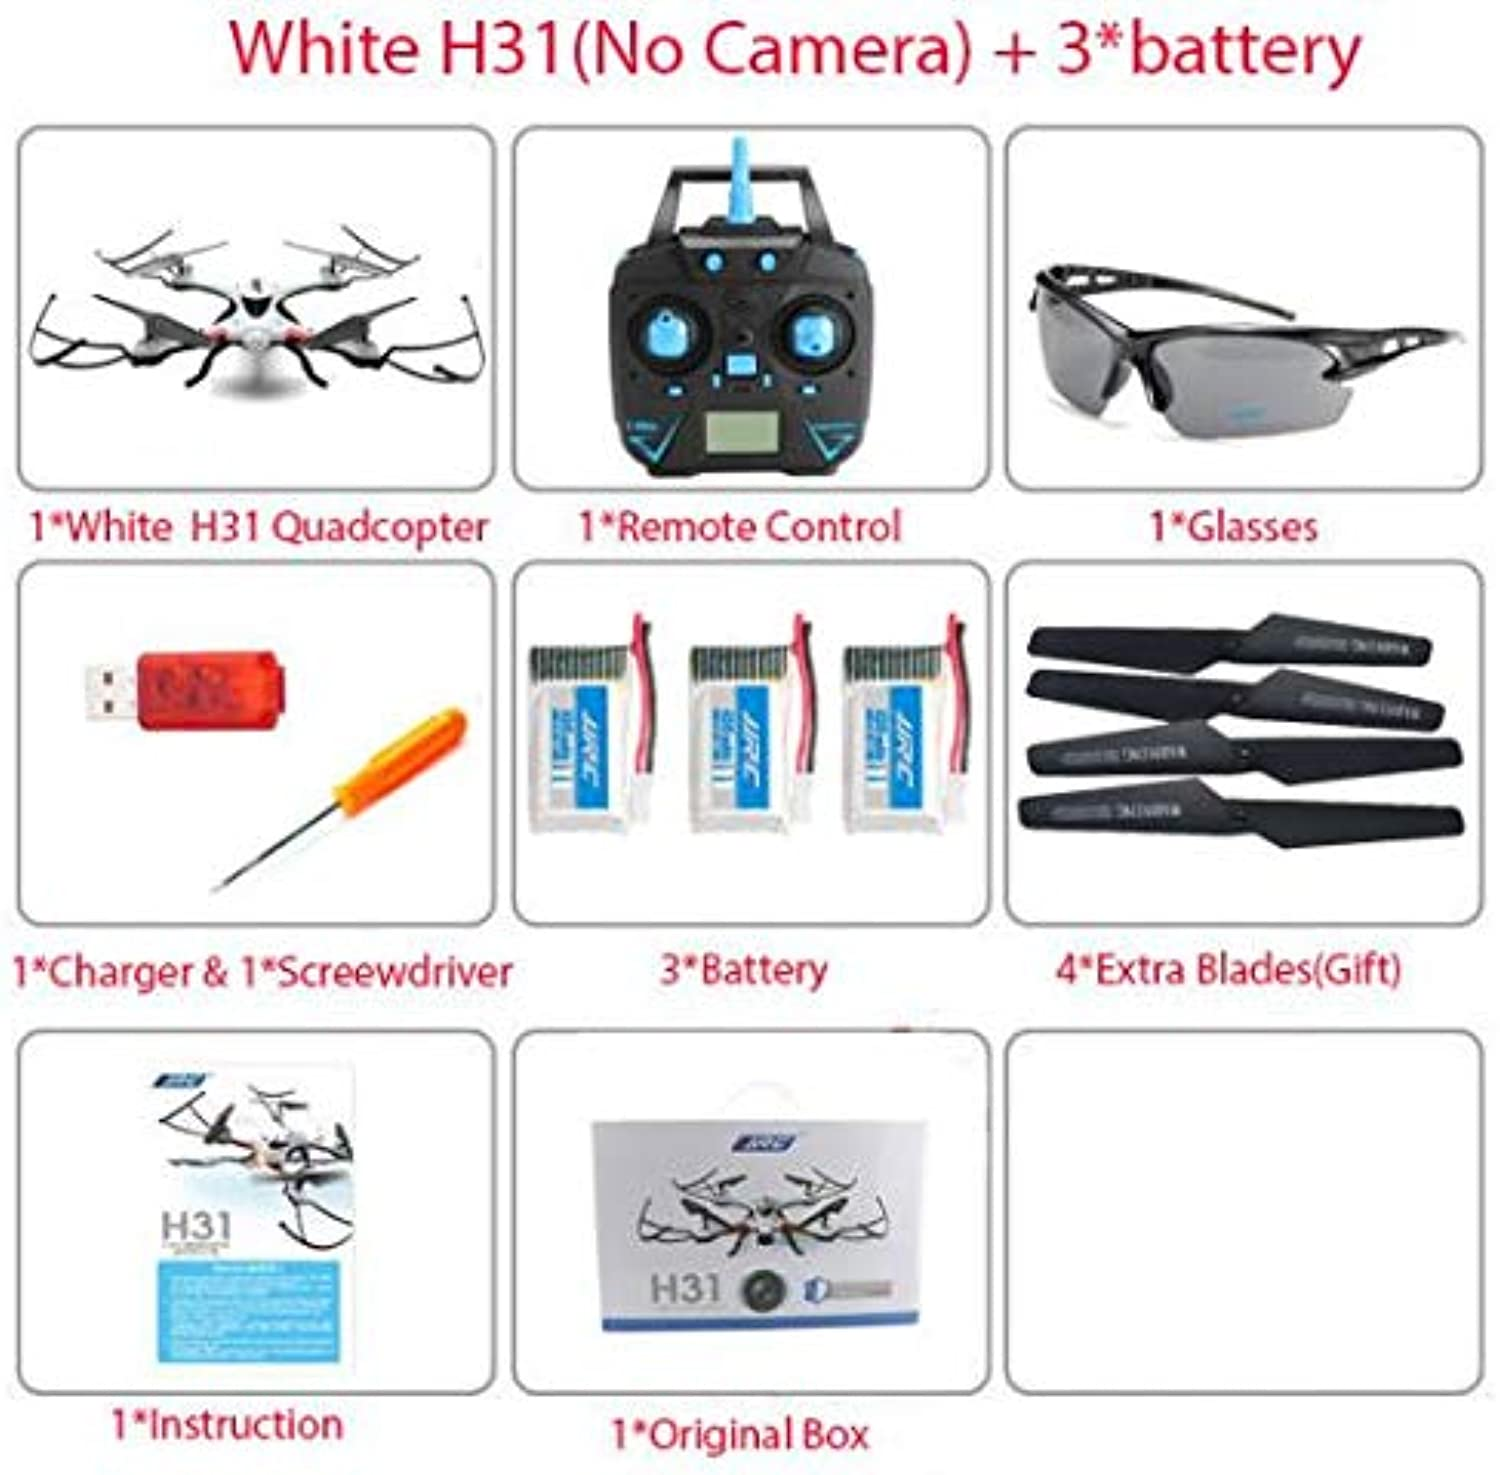 Generic Increase Price Next Month JJRC H31 Waterproof 2.4g RC Drone Helicopter Quadcopter with WiFi HD Camera V syma x5sw x5uw White h31 NO 3b Box